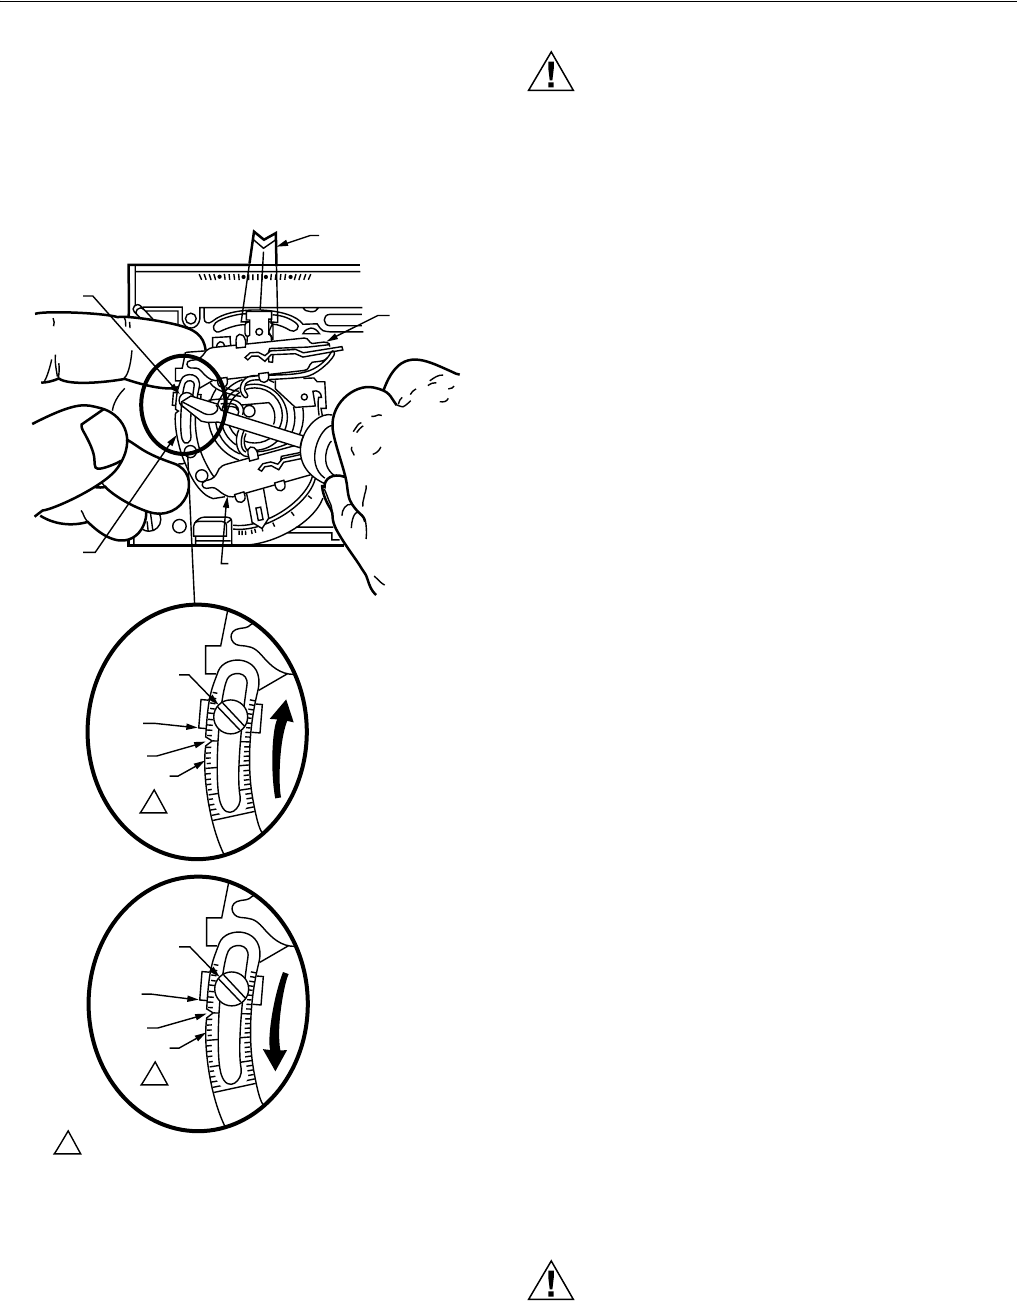 T874 multistage thermostats and q674 subbases